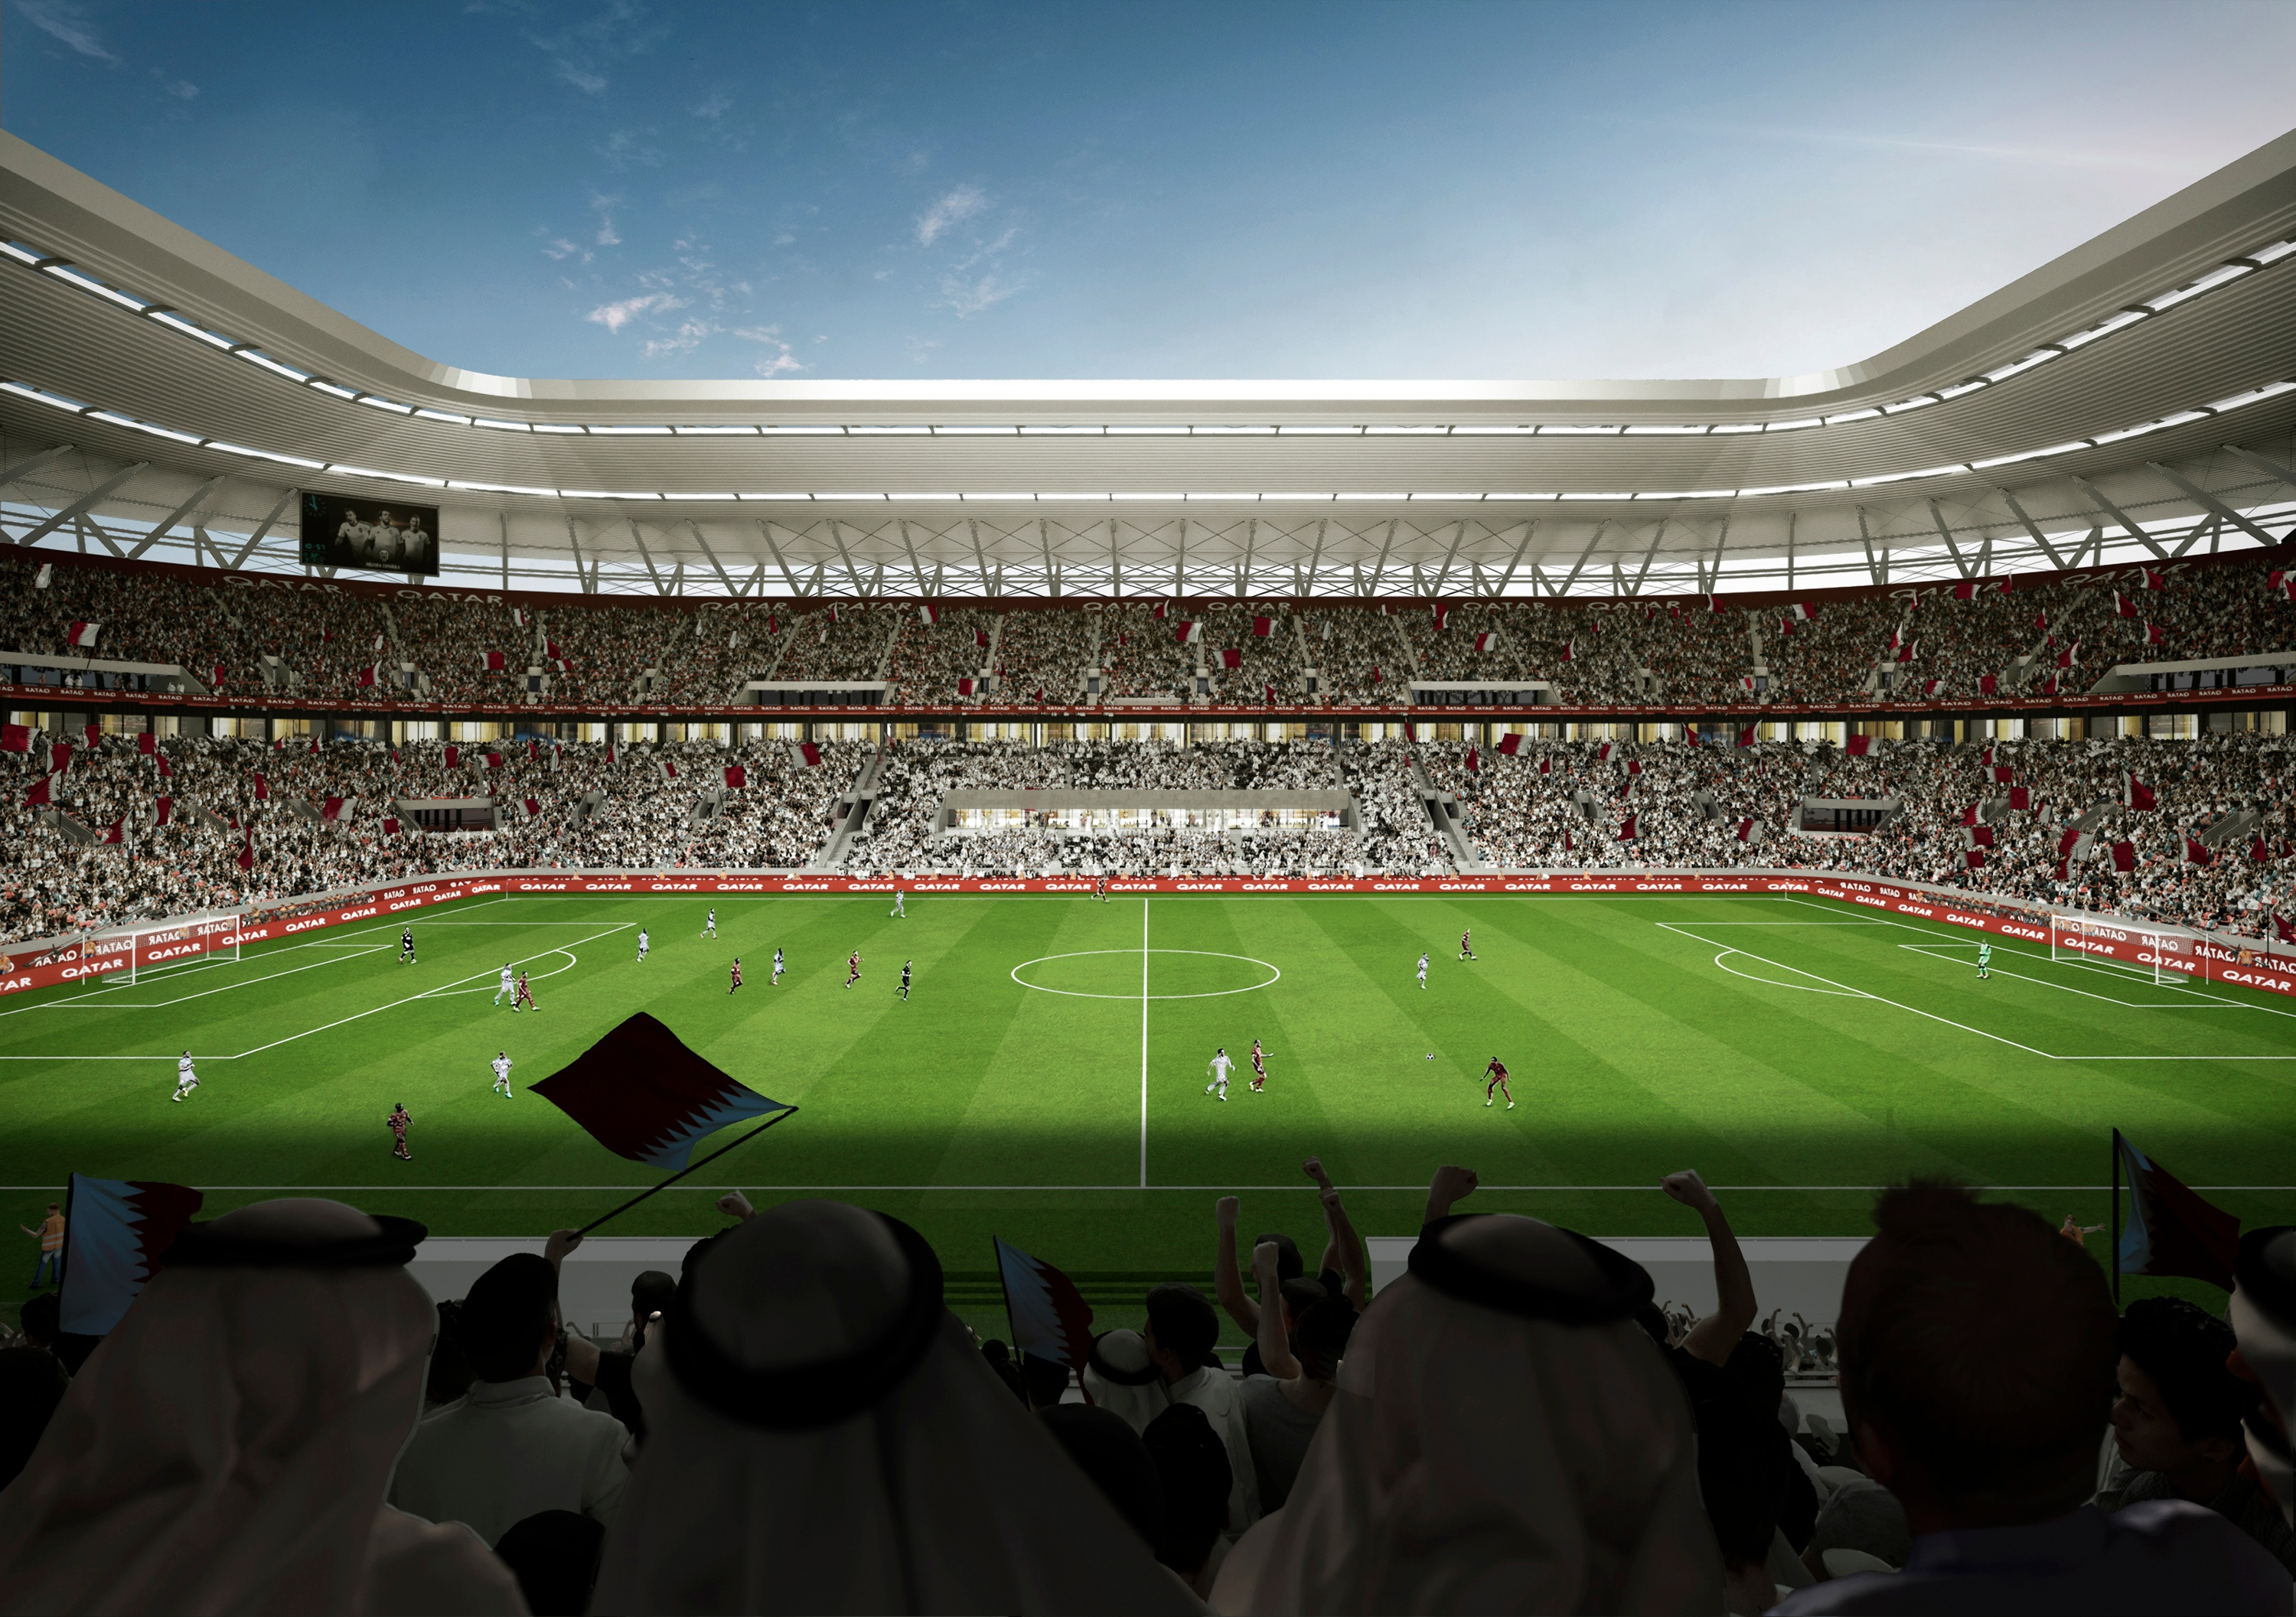 Ras Abu Aboud Stadion in Qatar